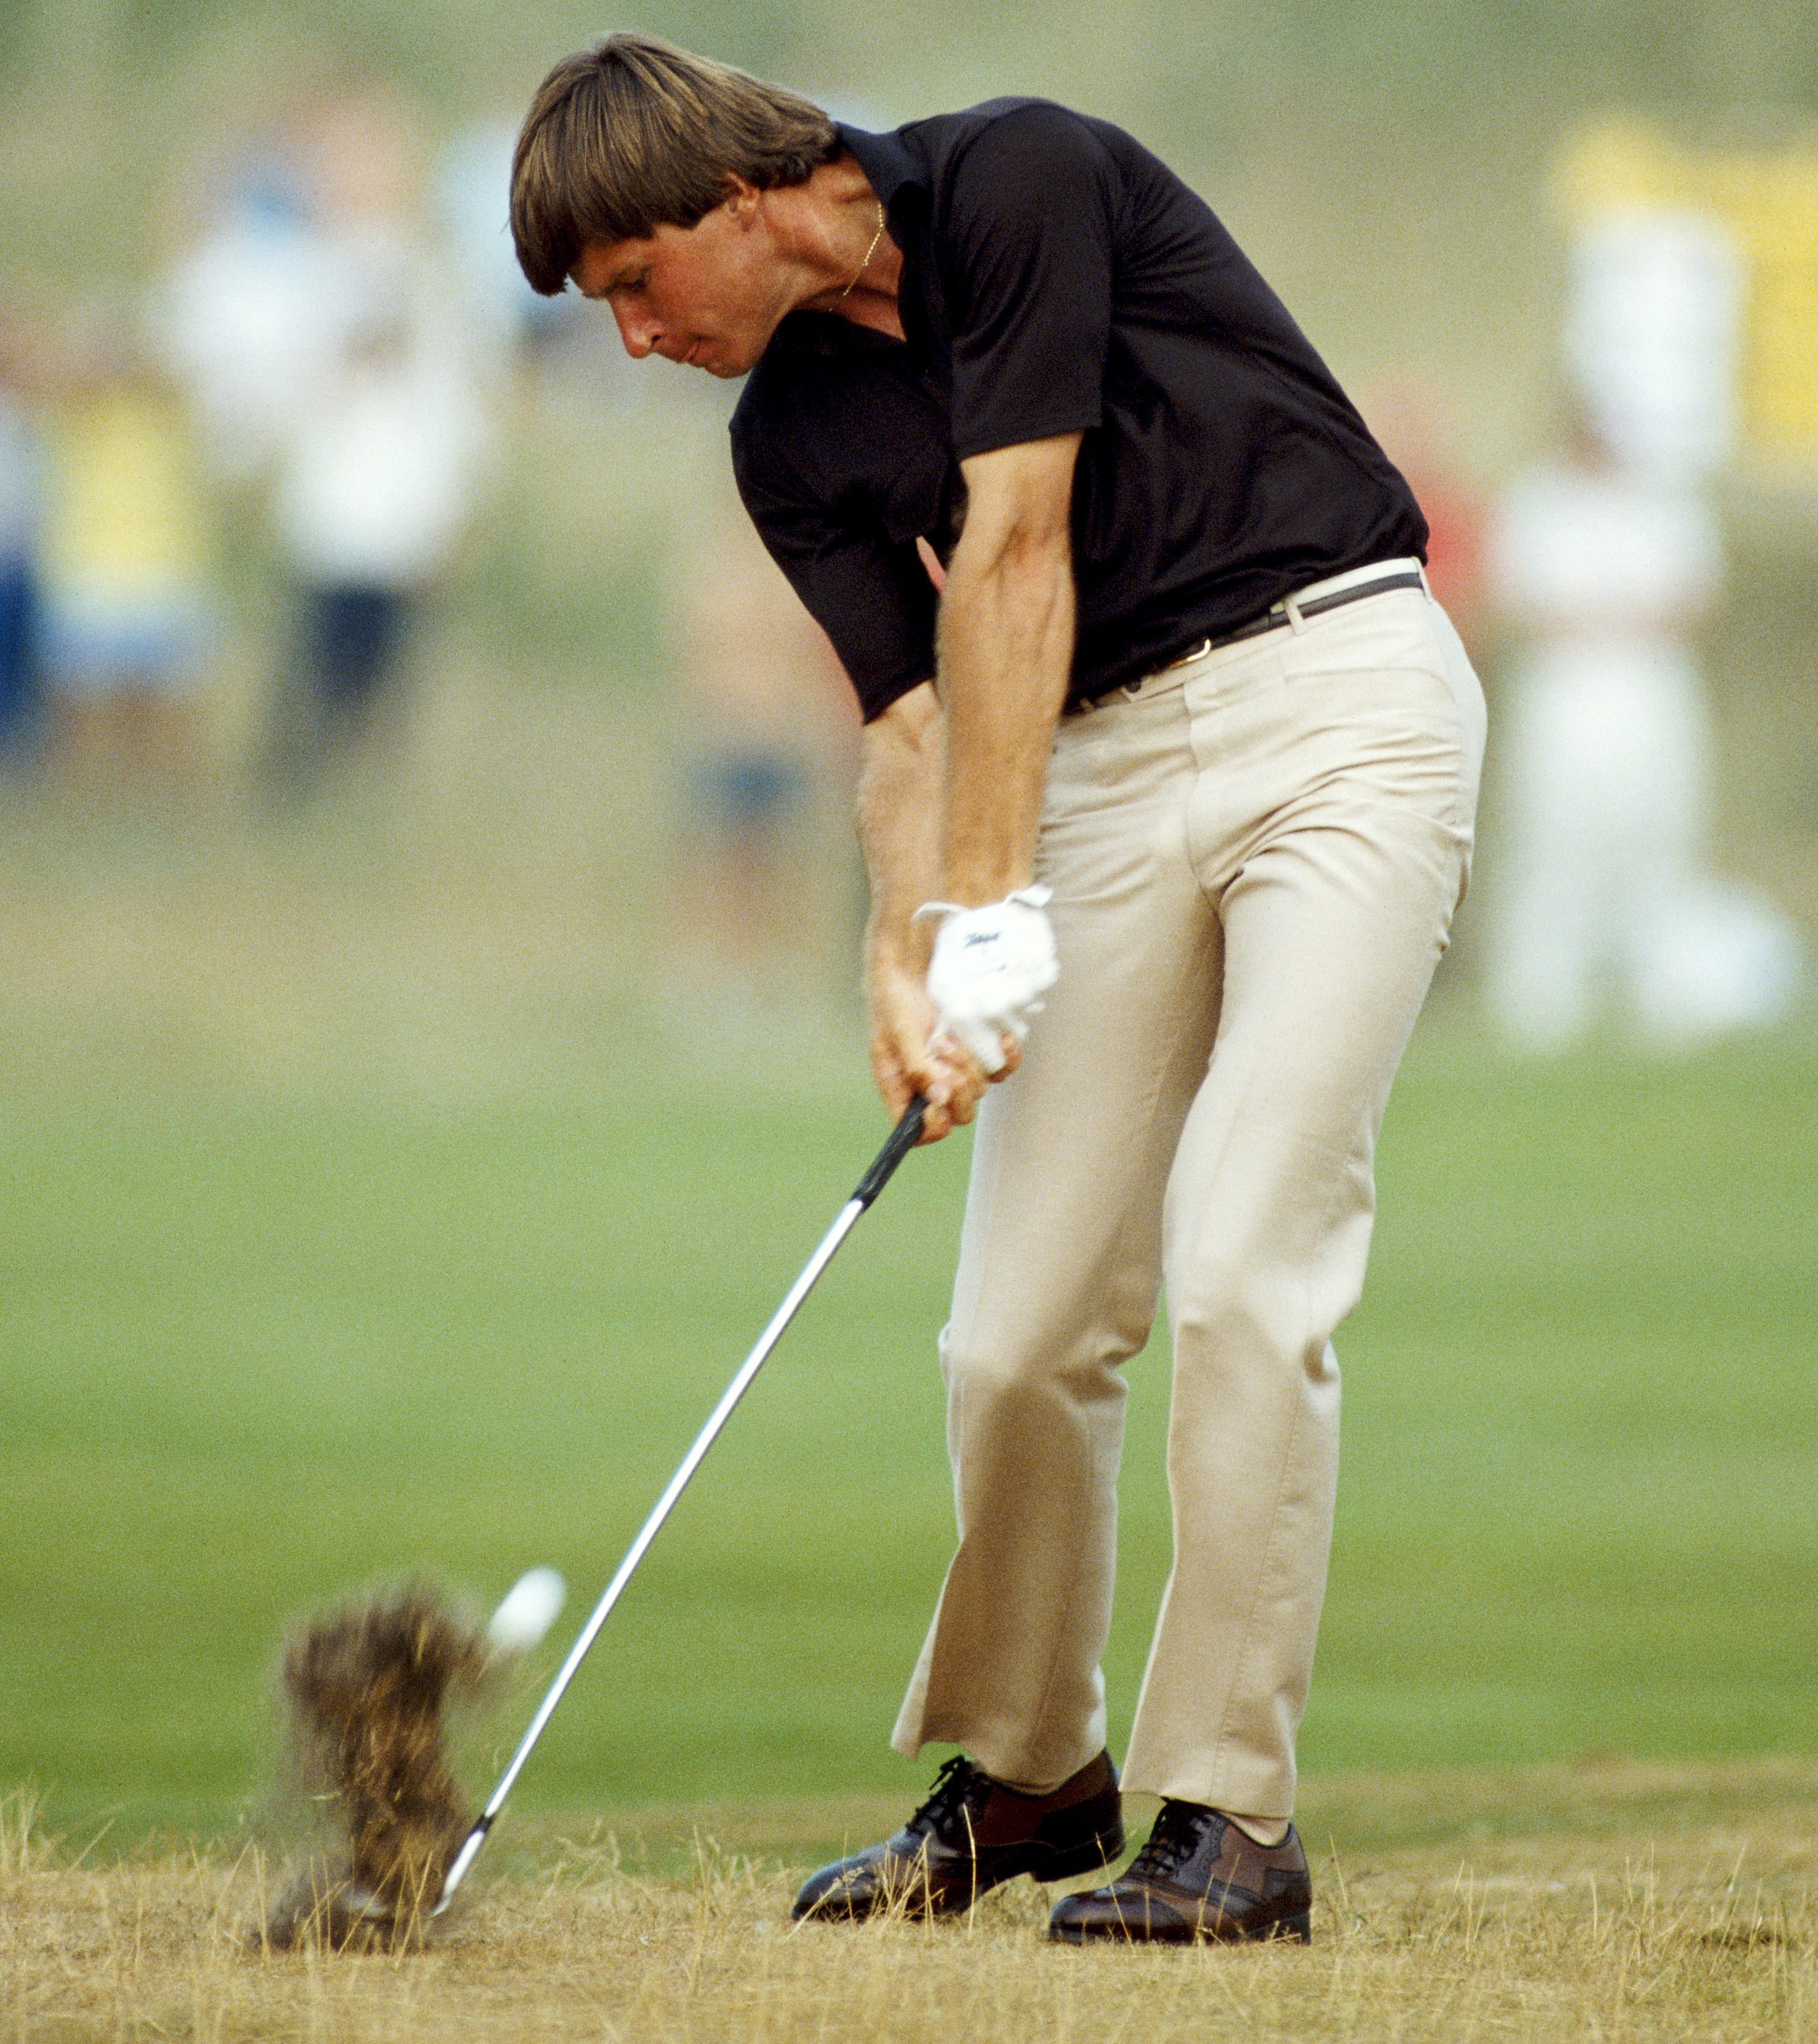 Despite early success on Tour and four top-10 Open finishes before 1985, Faldo remodelled his swing with coach David Leadbetter in the mid-1980s (Photo: Getty Images)